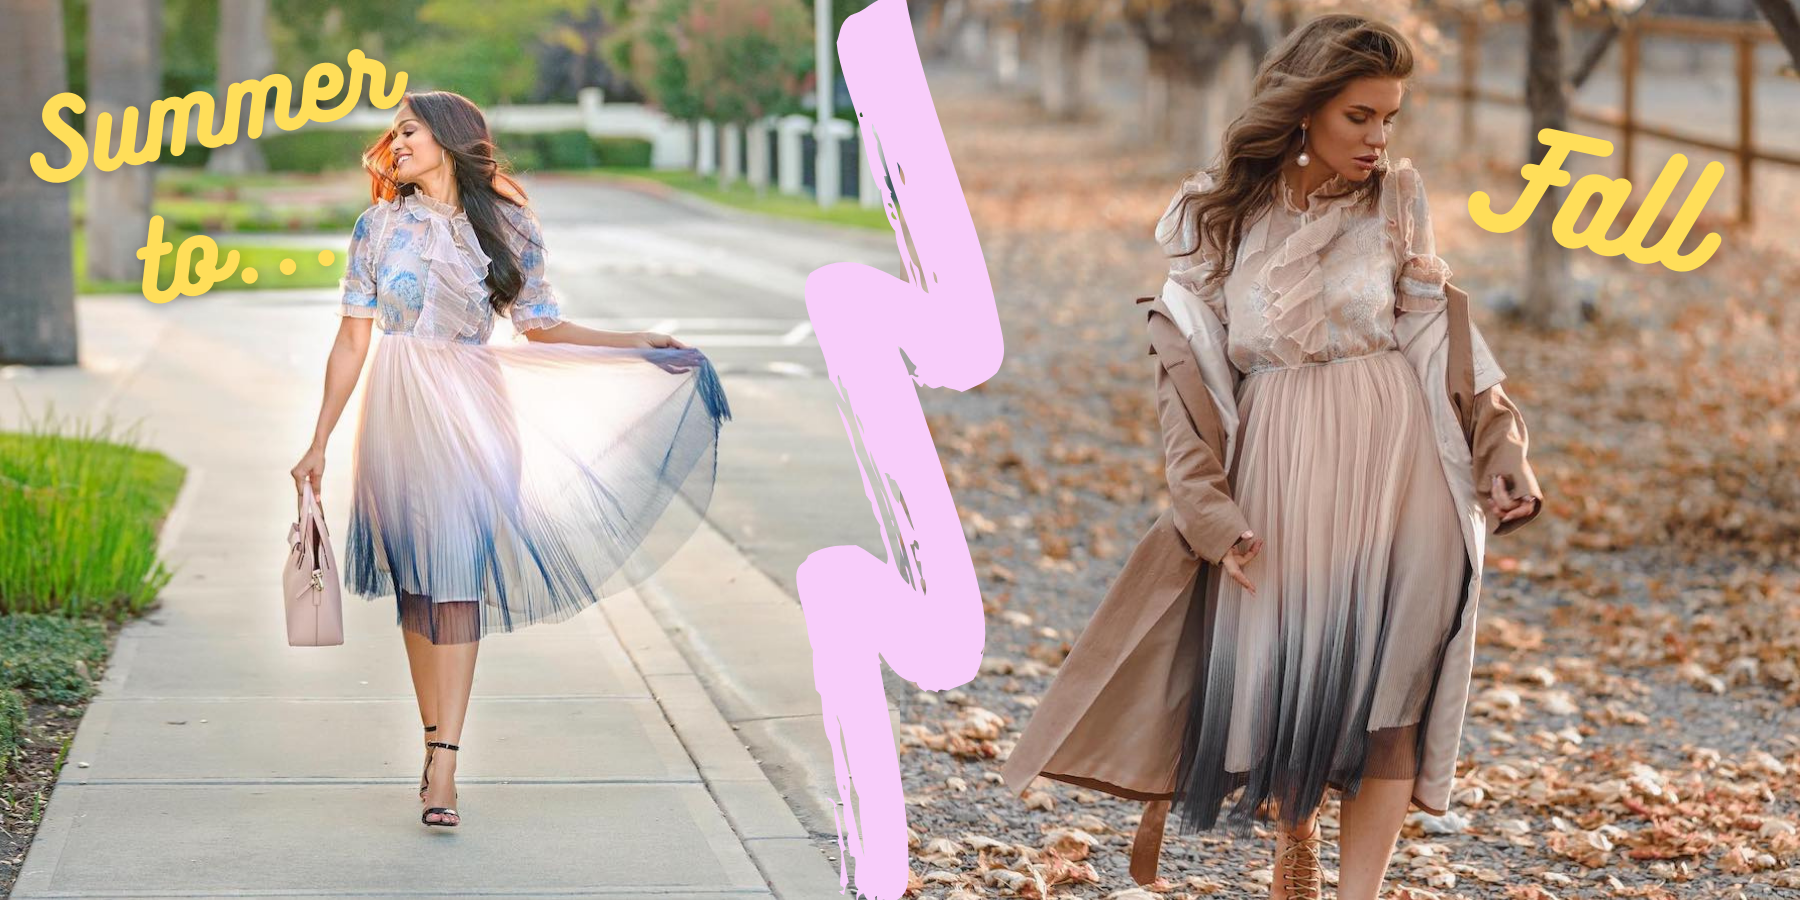 photo on left shows a woma nwearing a tulle dress with a nude to navy gradient and right shows woman wearing the same dress with boots and a coat over it